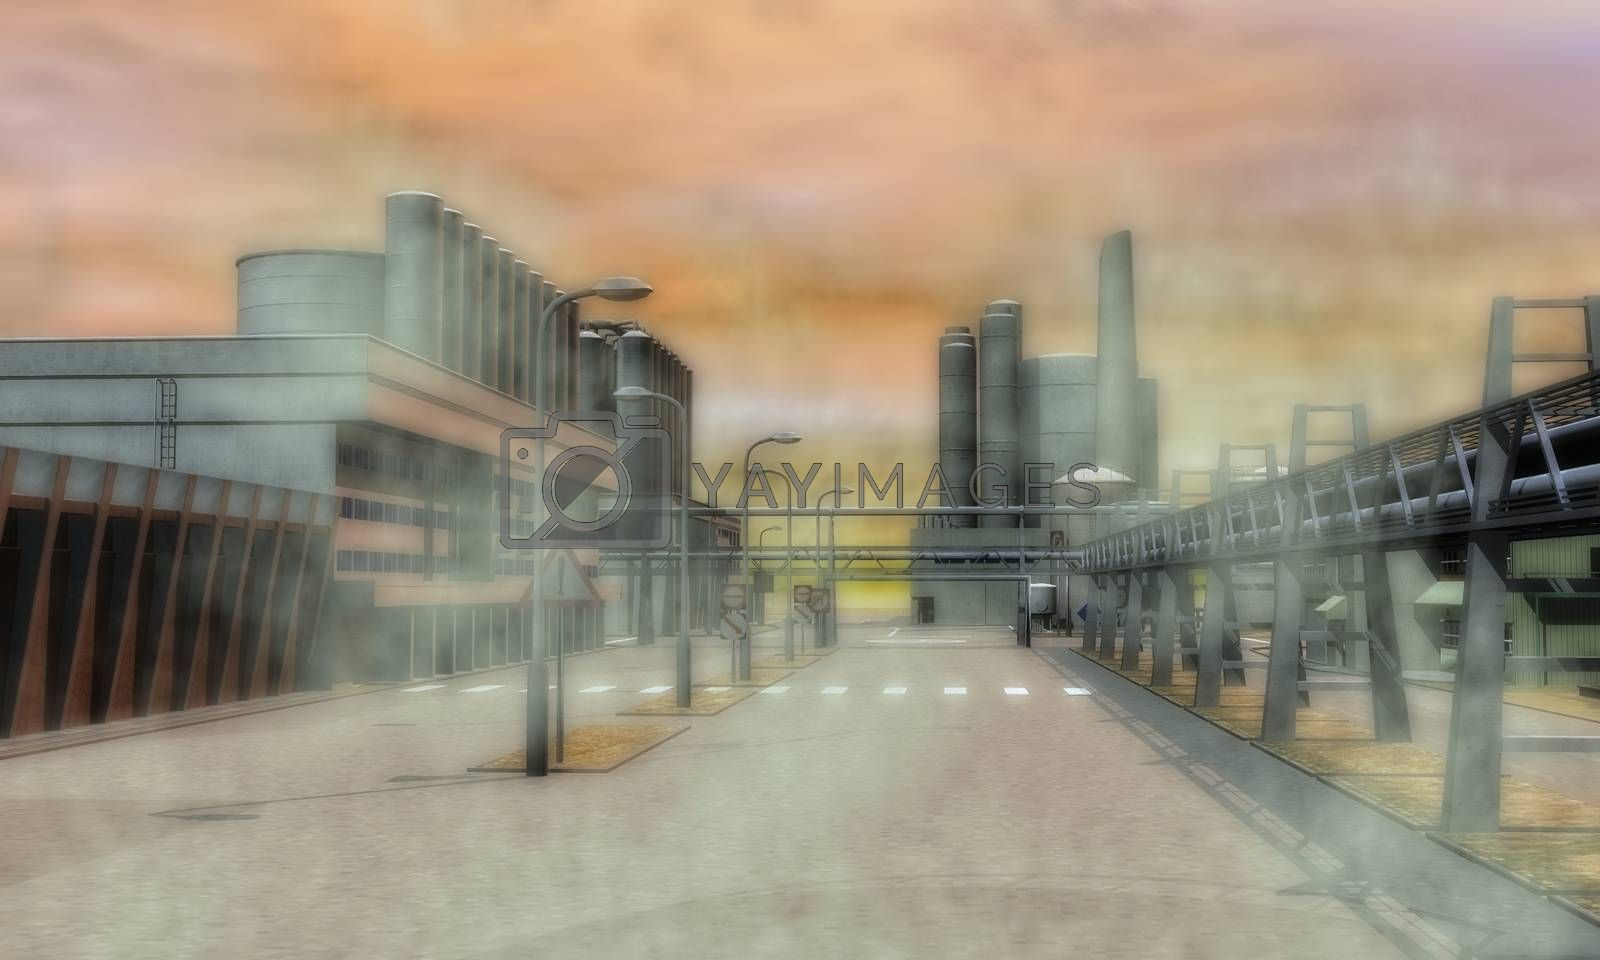 Digital Illustration of a Surreal Industrial Area